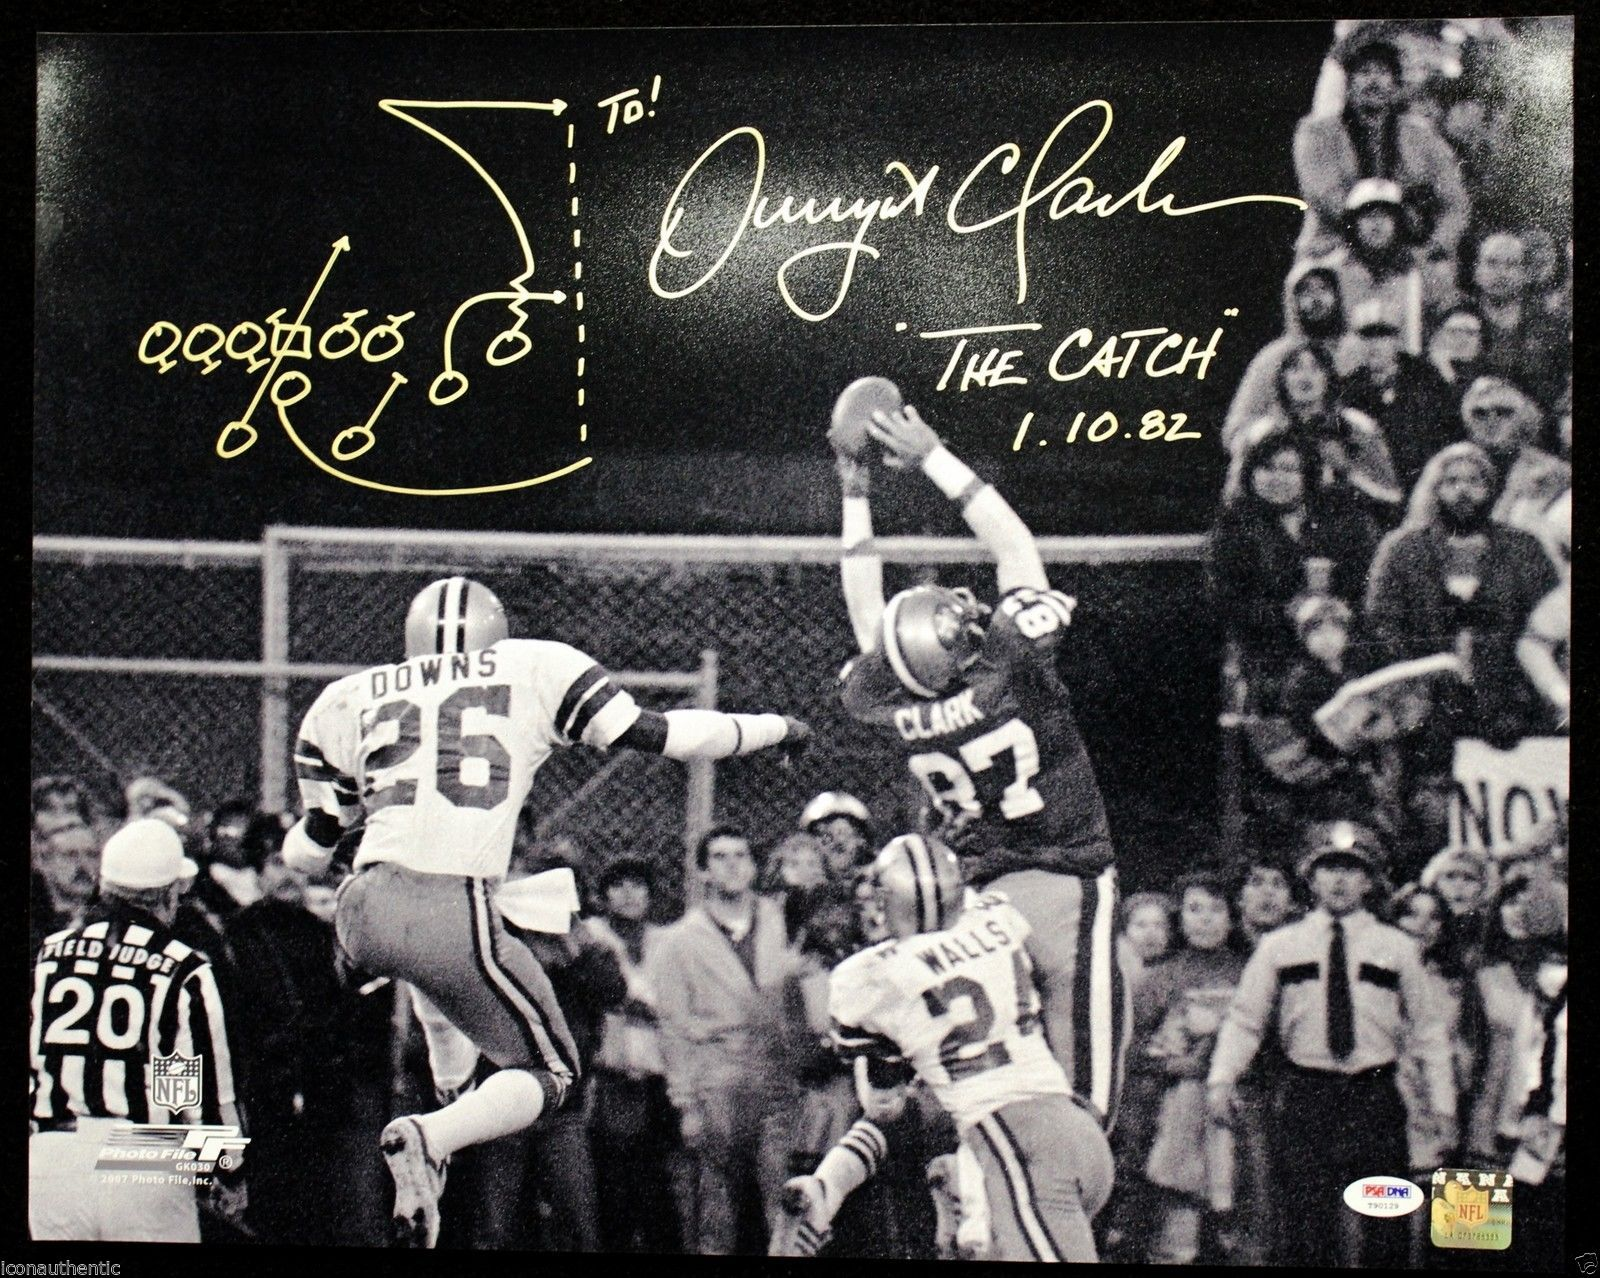 db0c71806 Dwight Clark Signed Autographed 16x20 49ers Catch Drawn PSA